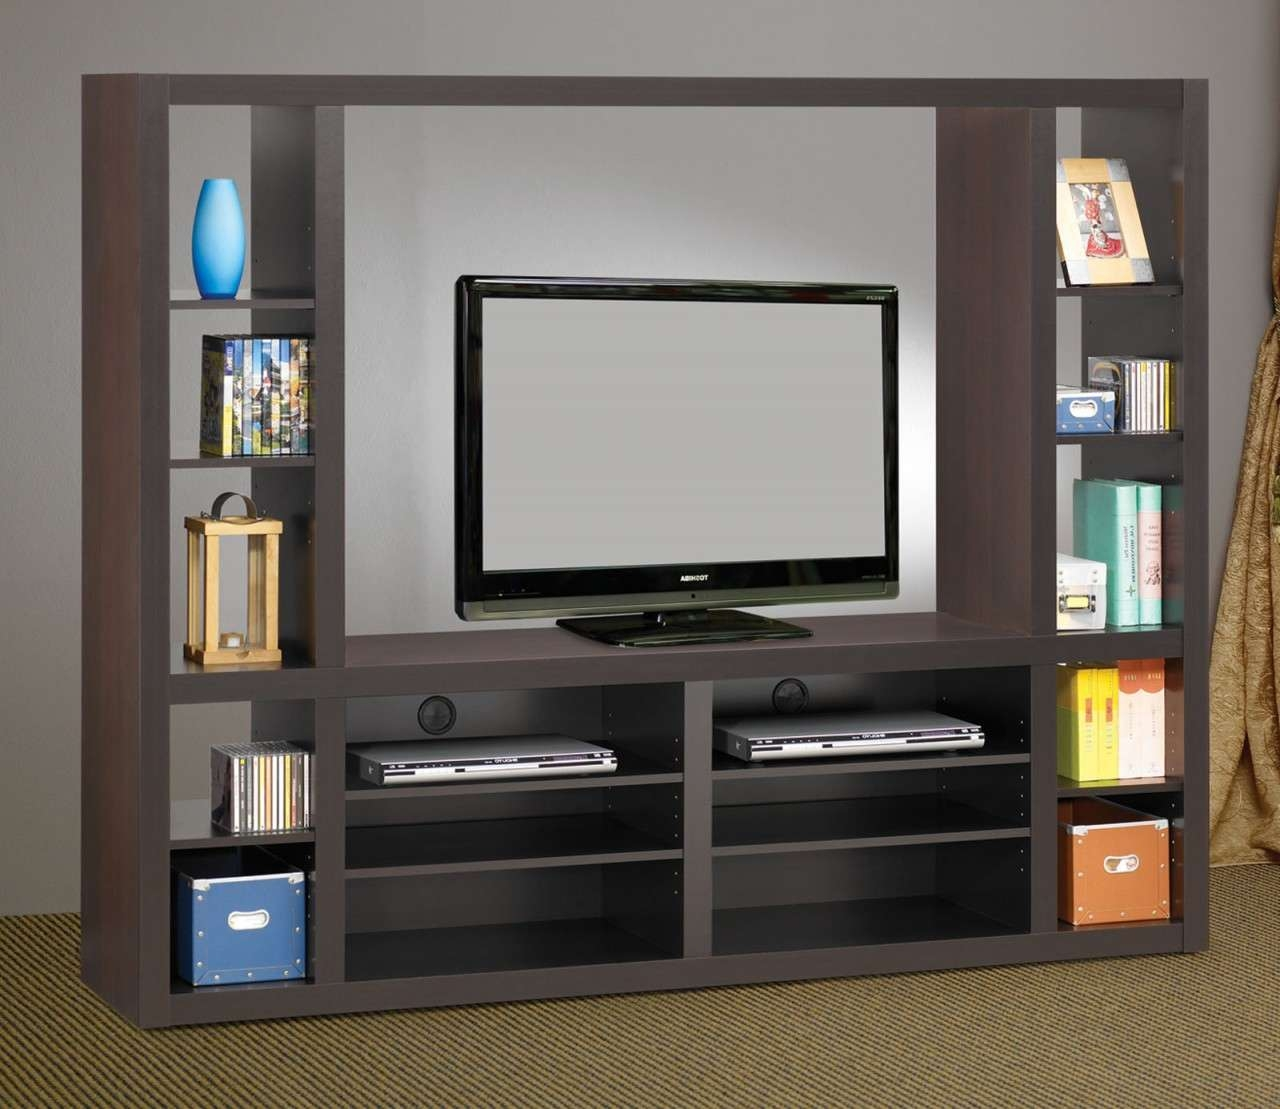 Flat Screen Tv Wall Unit Idea – Wall Units Design Ideas Intended For Modern Tv Cabinets For Flat Screens (View 6 of 20)